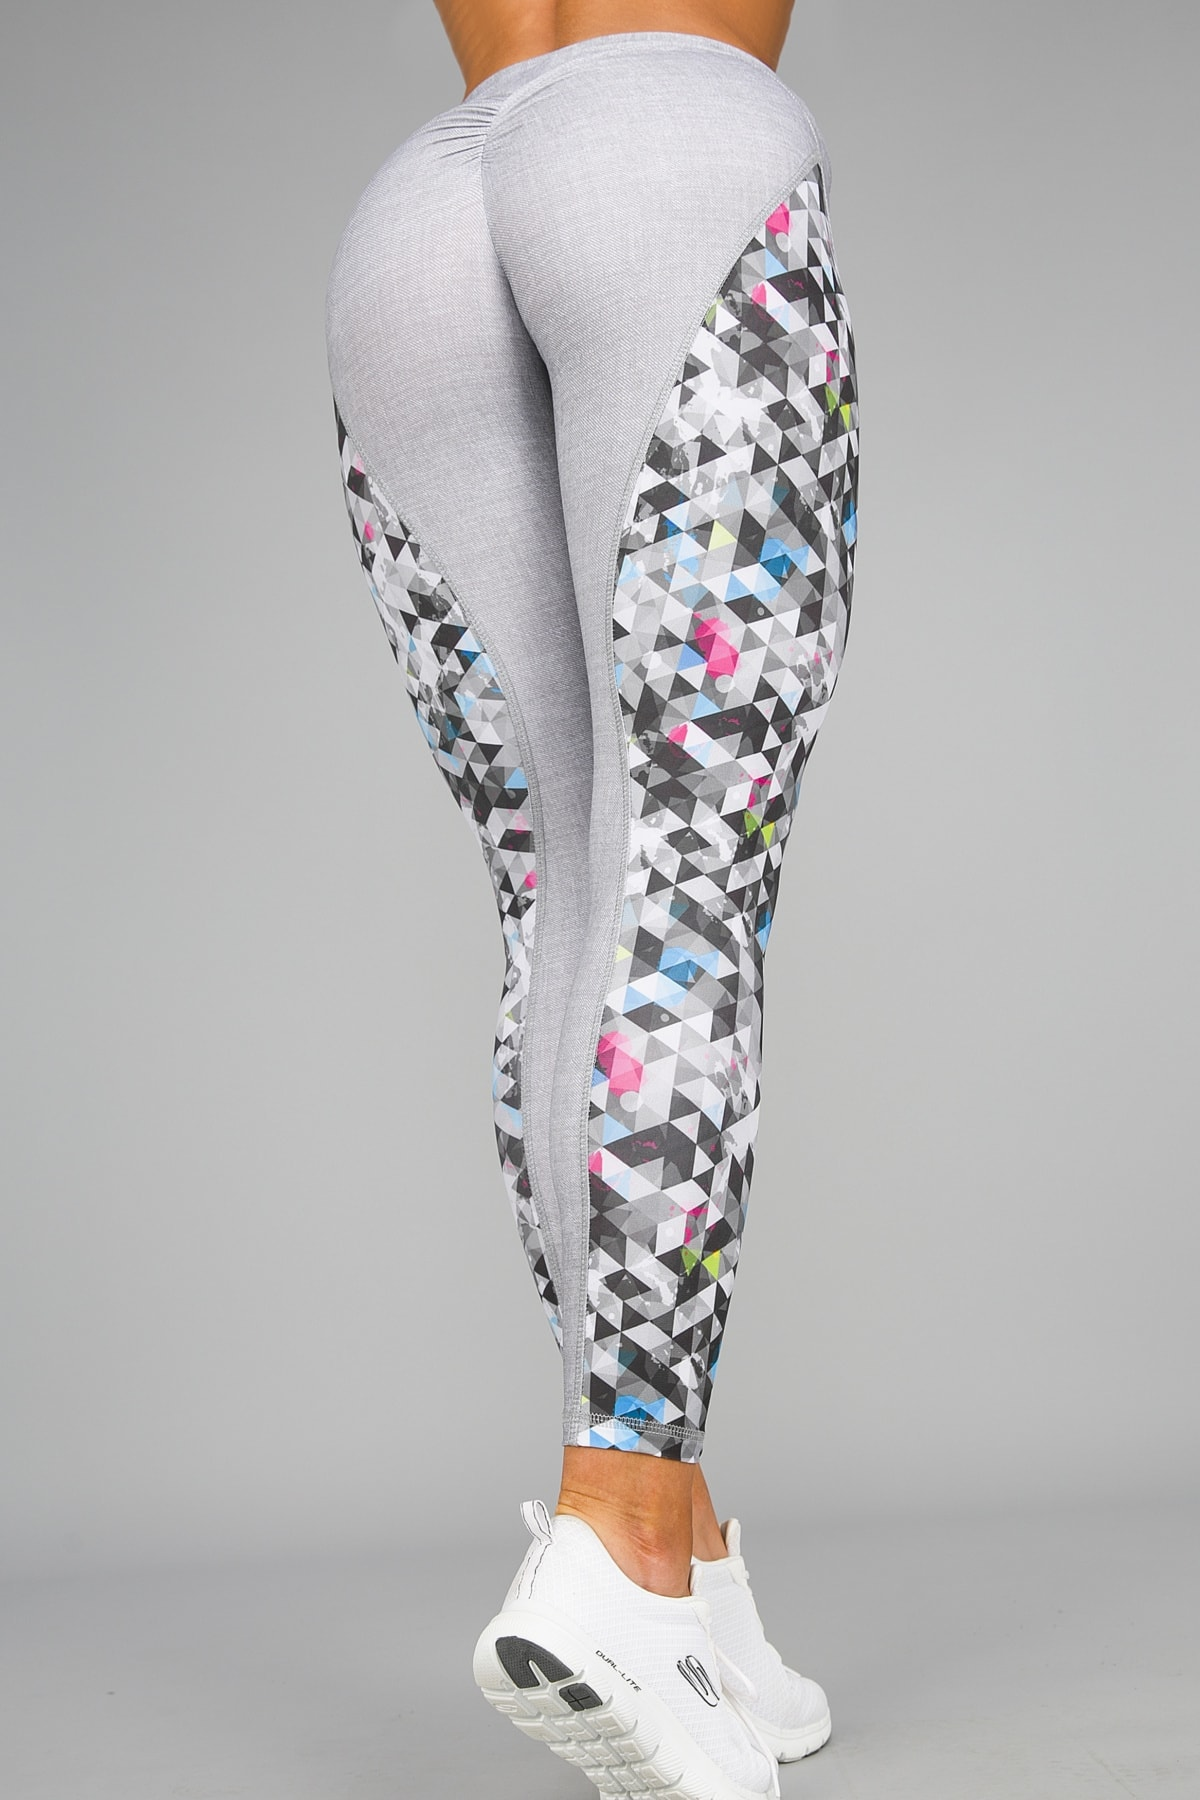 ABS2B Fitness Zero Flaw High Rise Leggings – Silver15